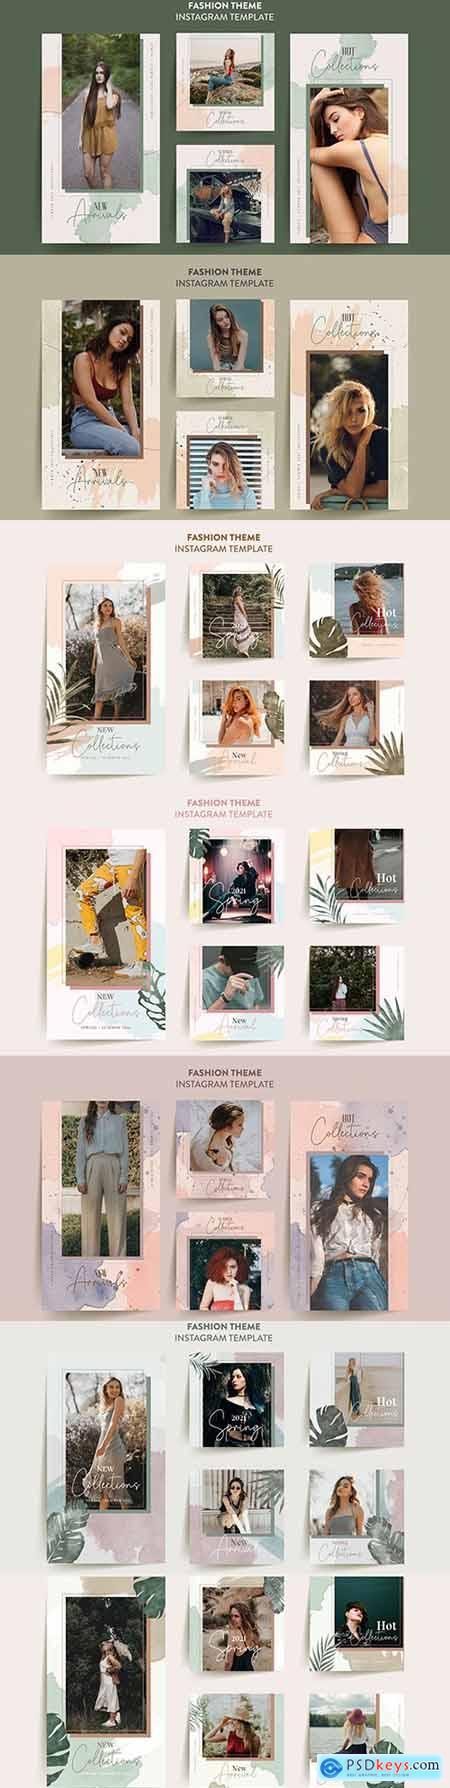 Fashion woman s instagram story template with tropical leaves